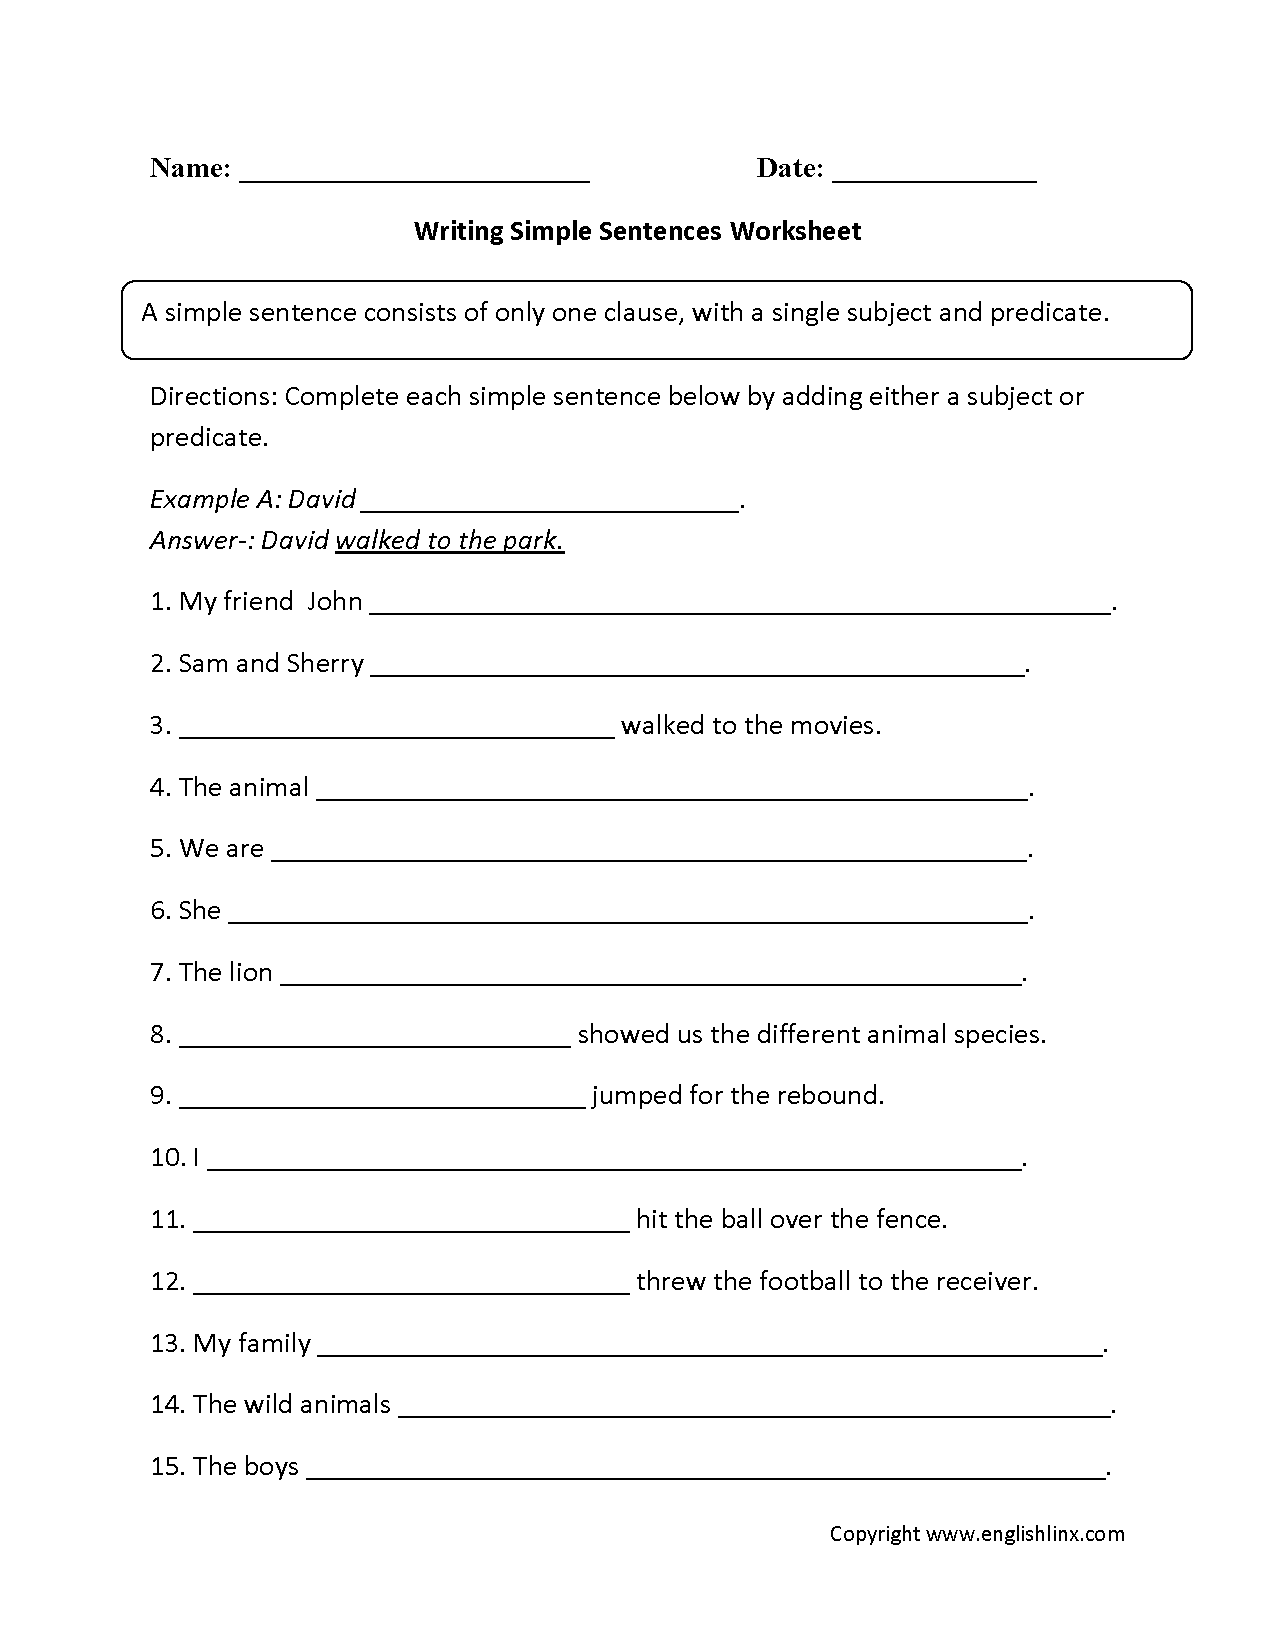 17 Best Images Of Simple Sentence Worksheets 6th Grade